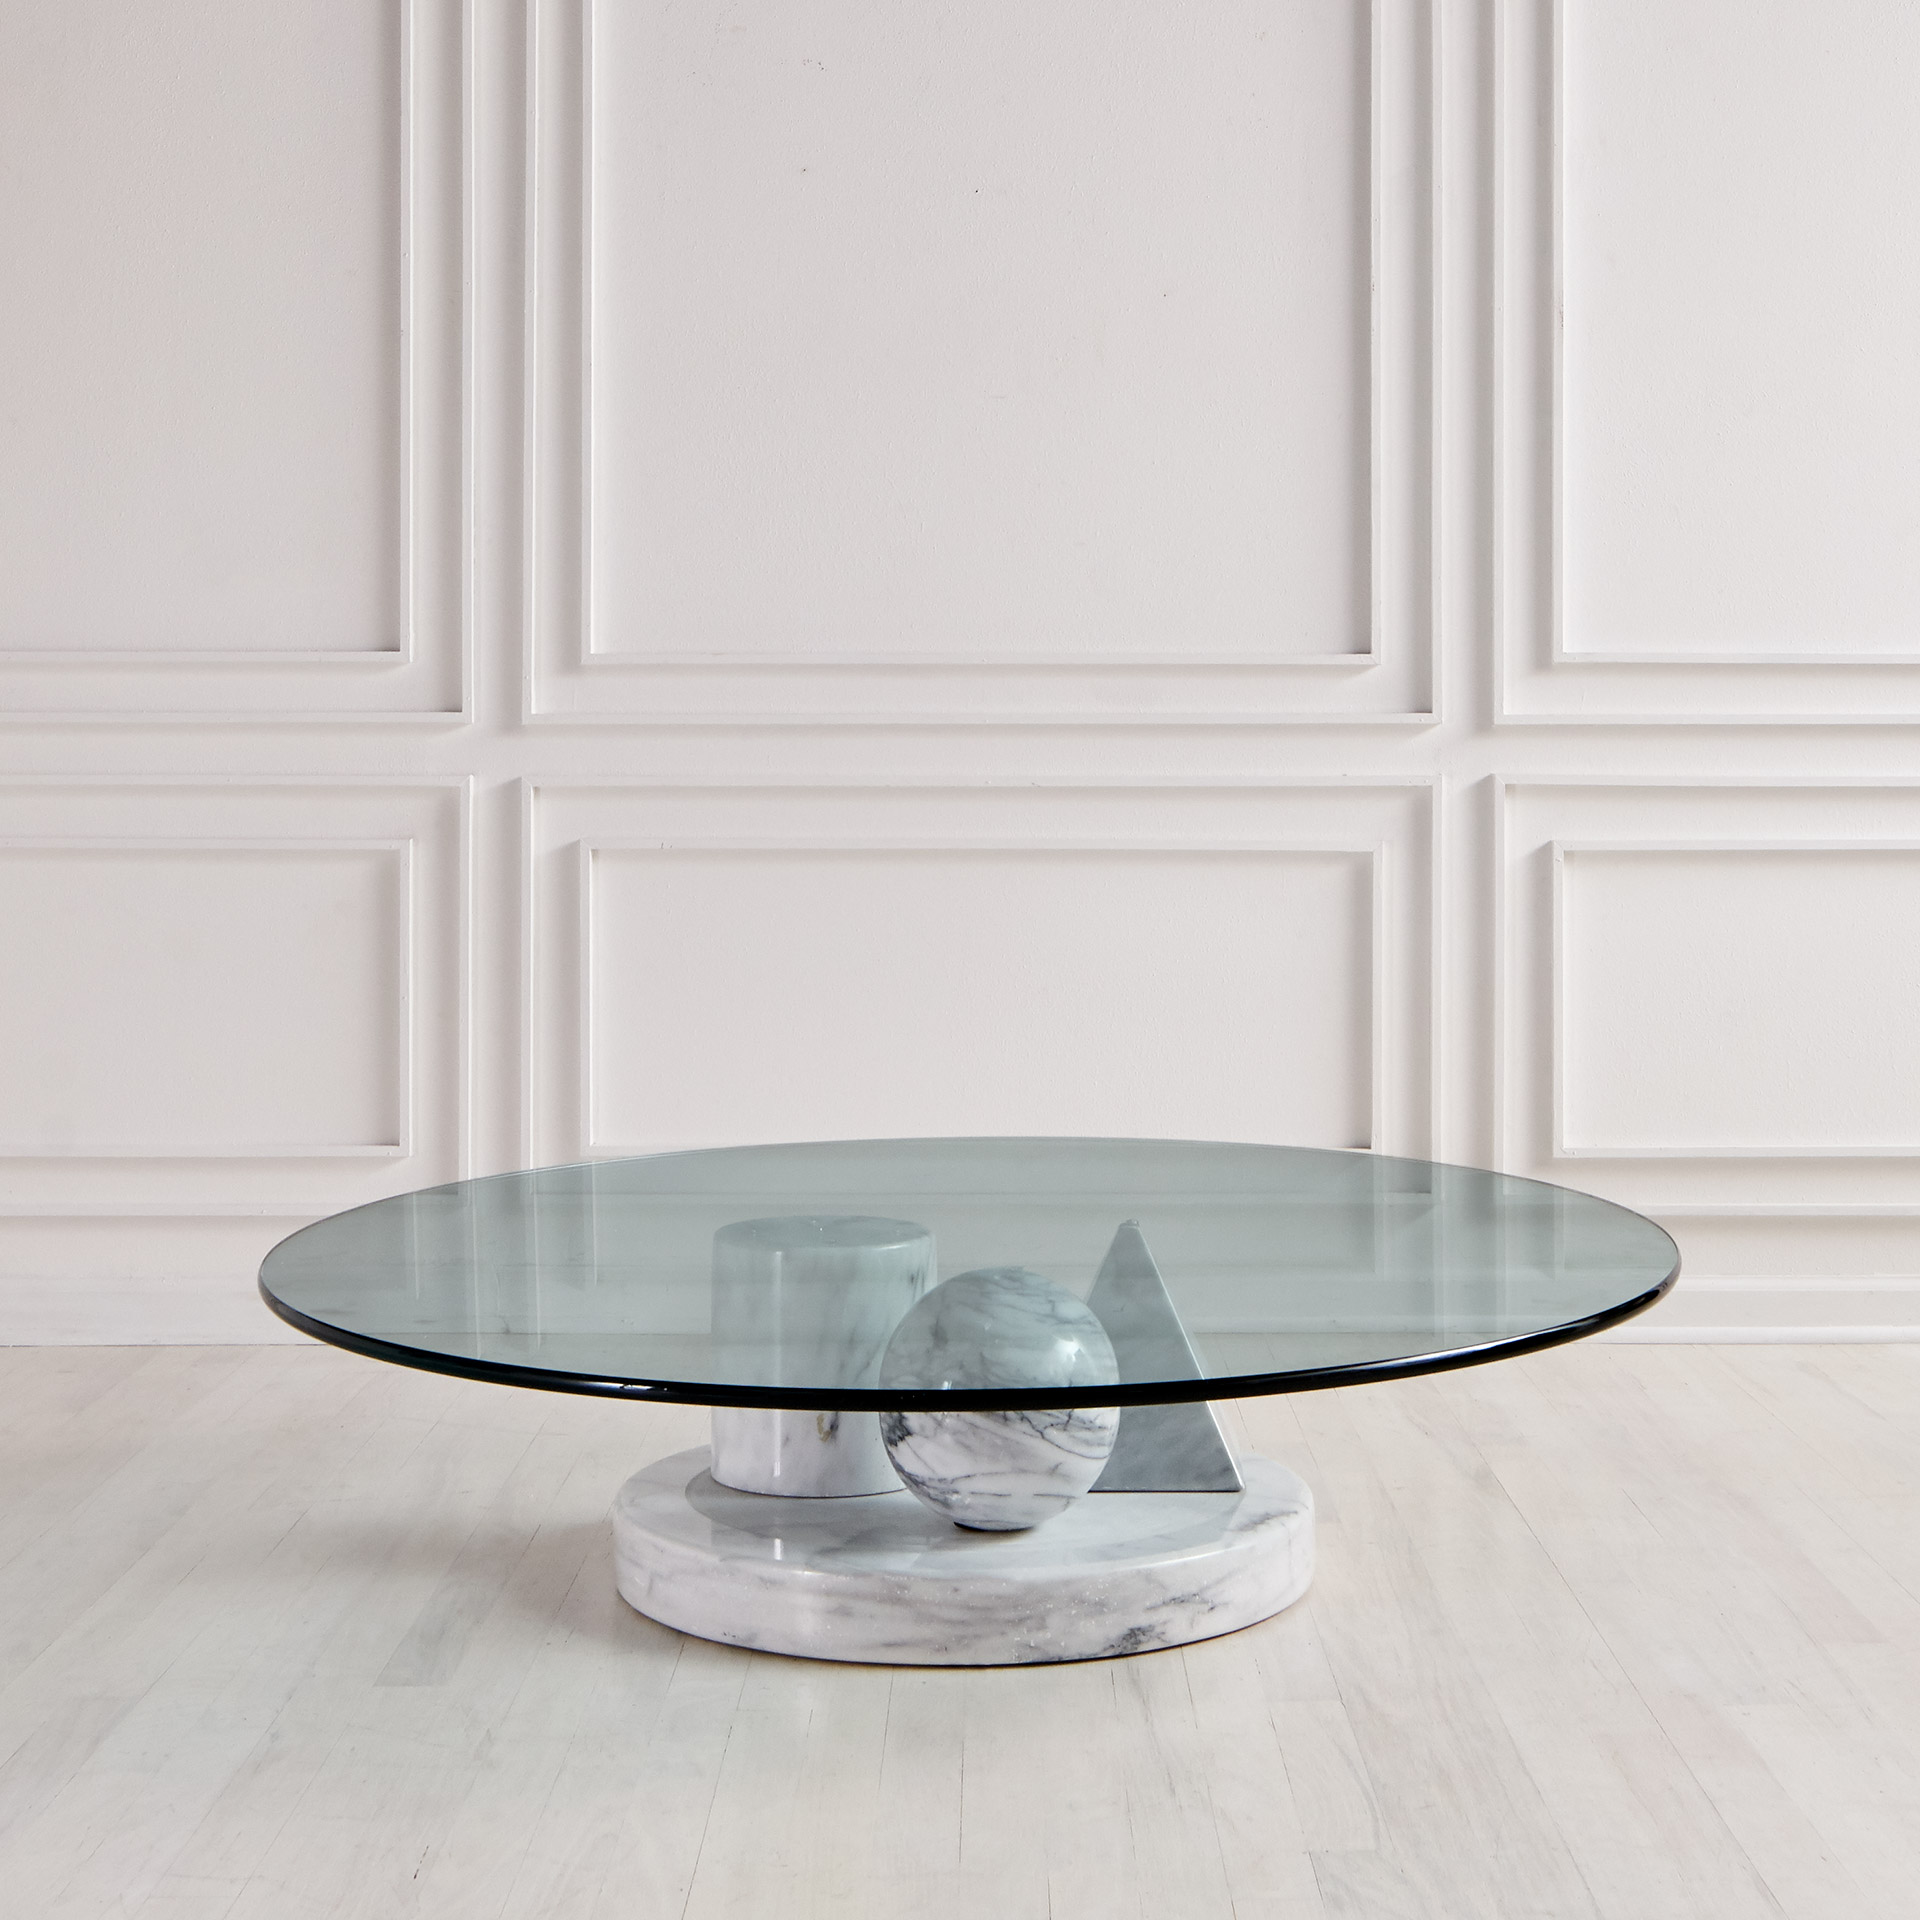 Italian Marble Coffee Table By Massimo Vignelli For Casigliani South Loop Loft